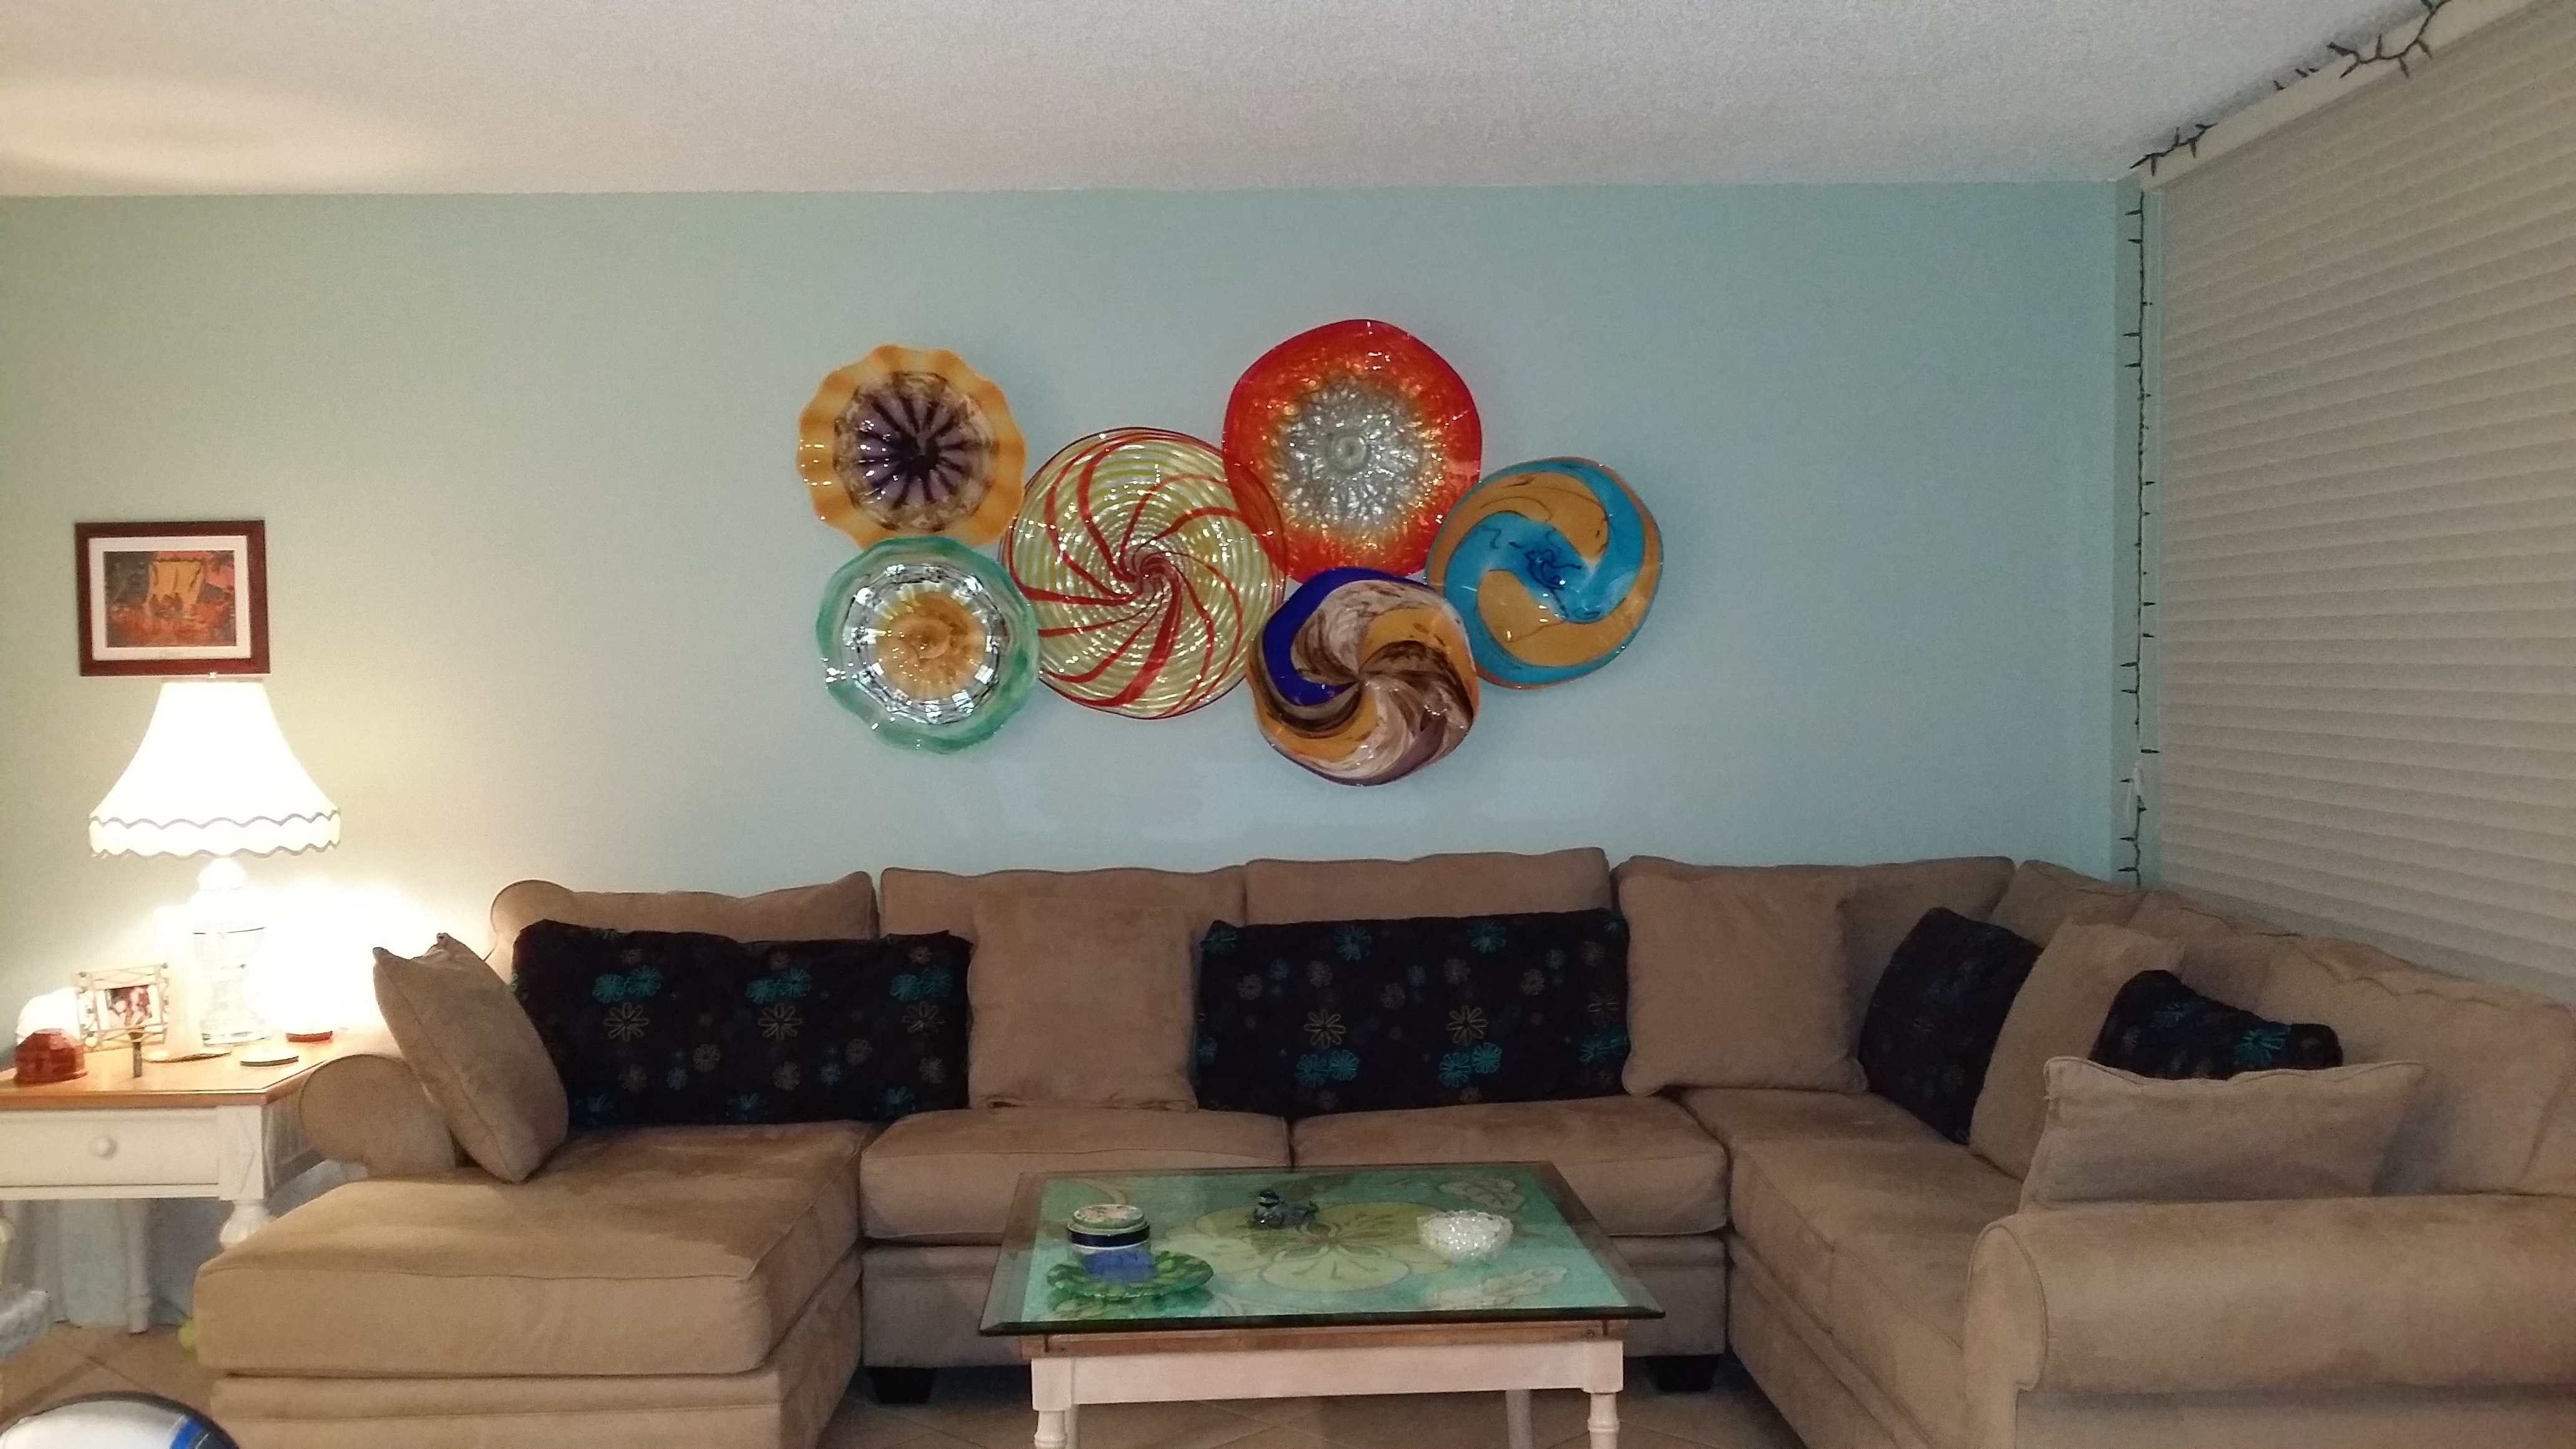 Wall Decor Glass Plates – Jscollectionofficial Intended For Current Glass Plate Wall Art (Gallery 5 of 15)